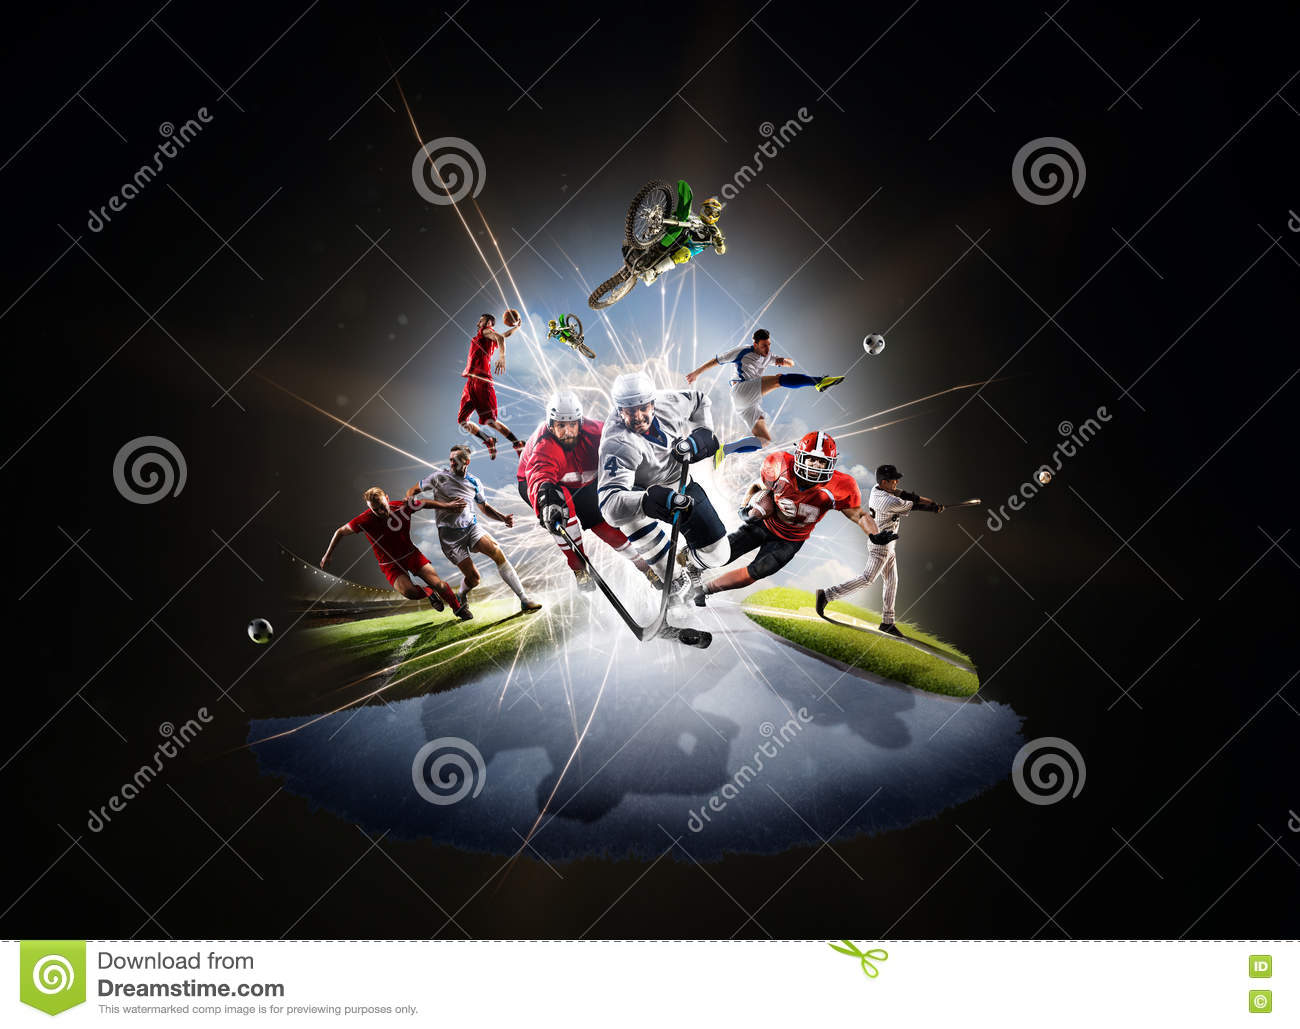 Multi sports collage soccer basketball hockey footbal baseball dirt bike